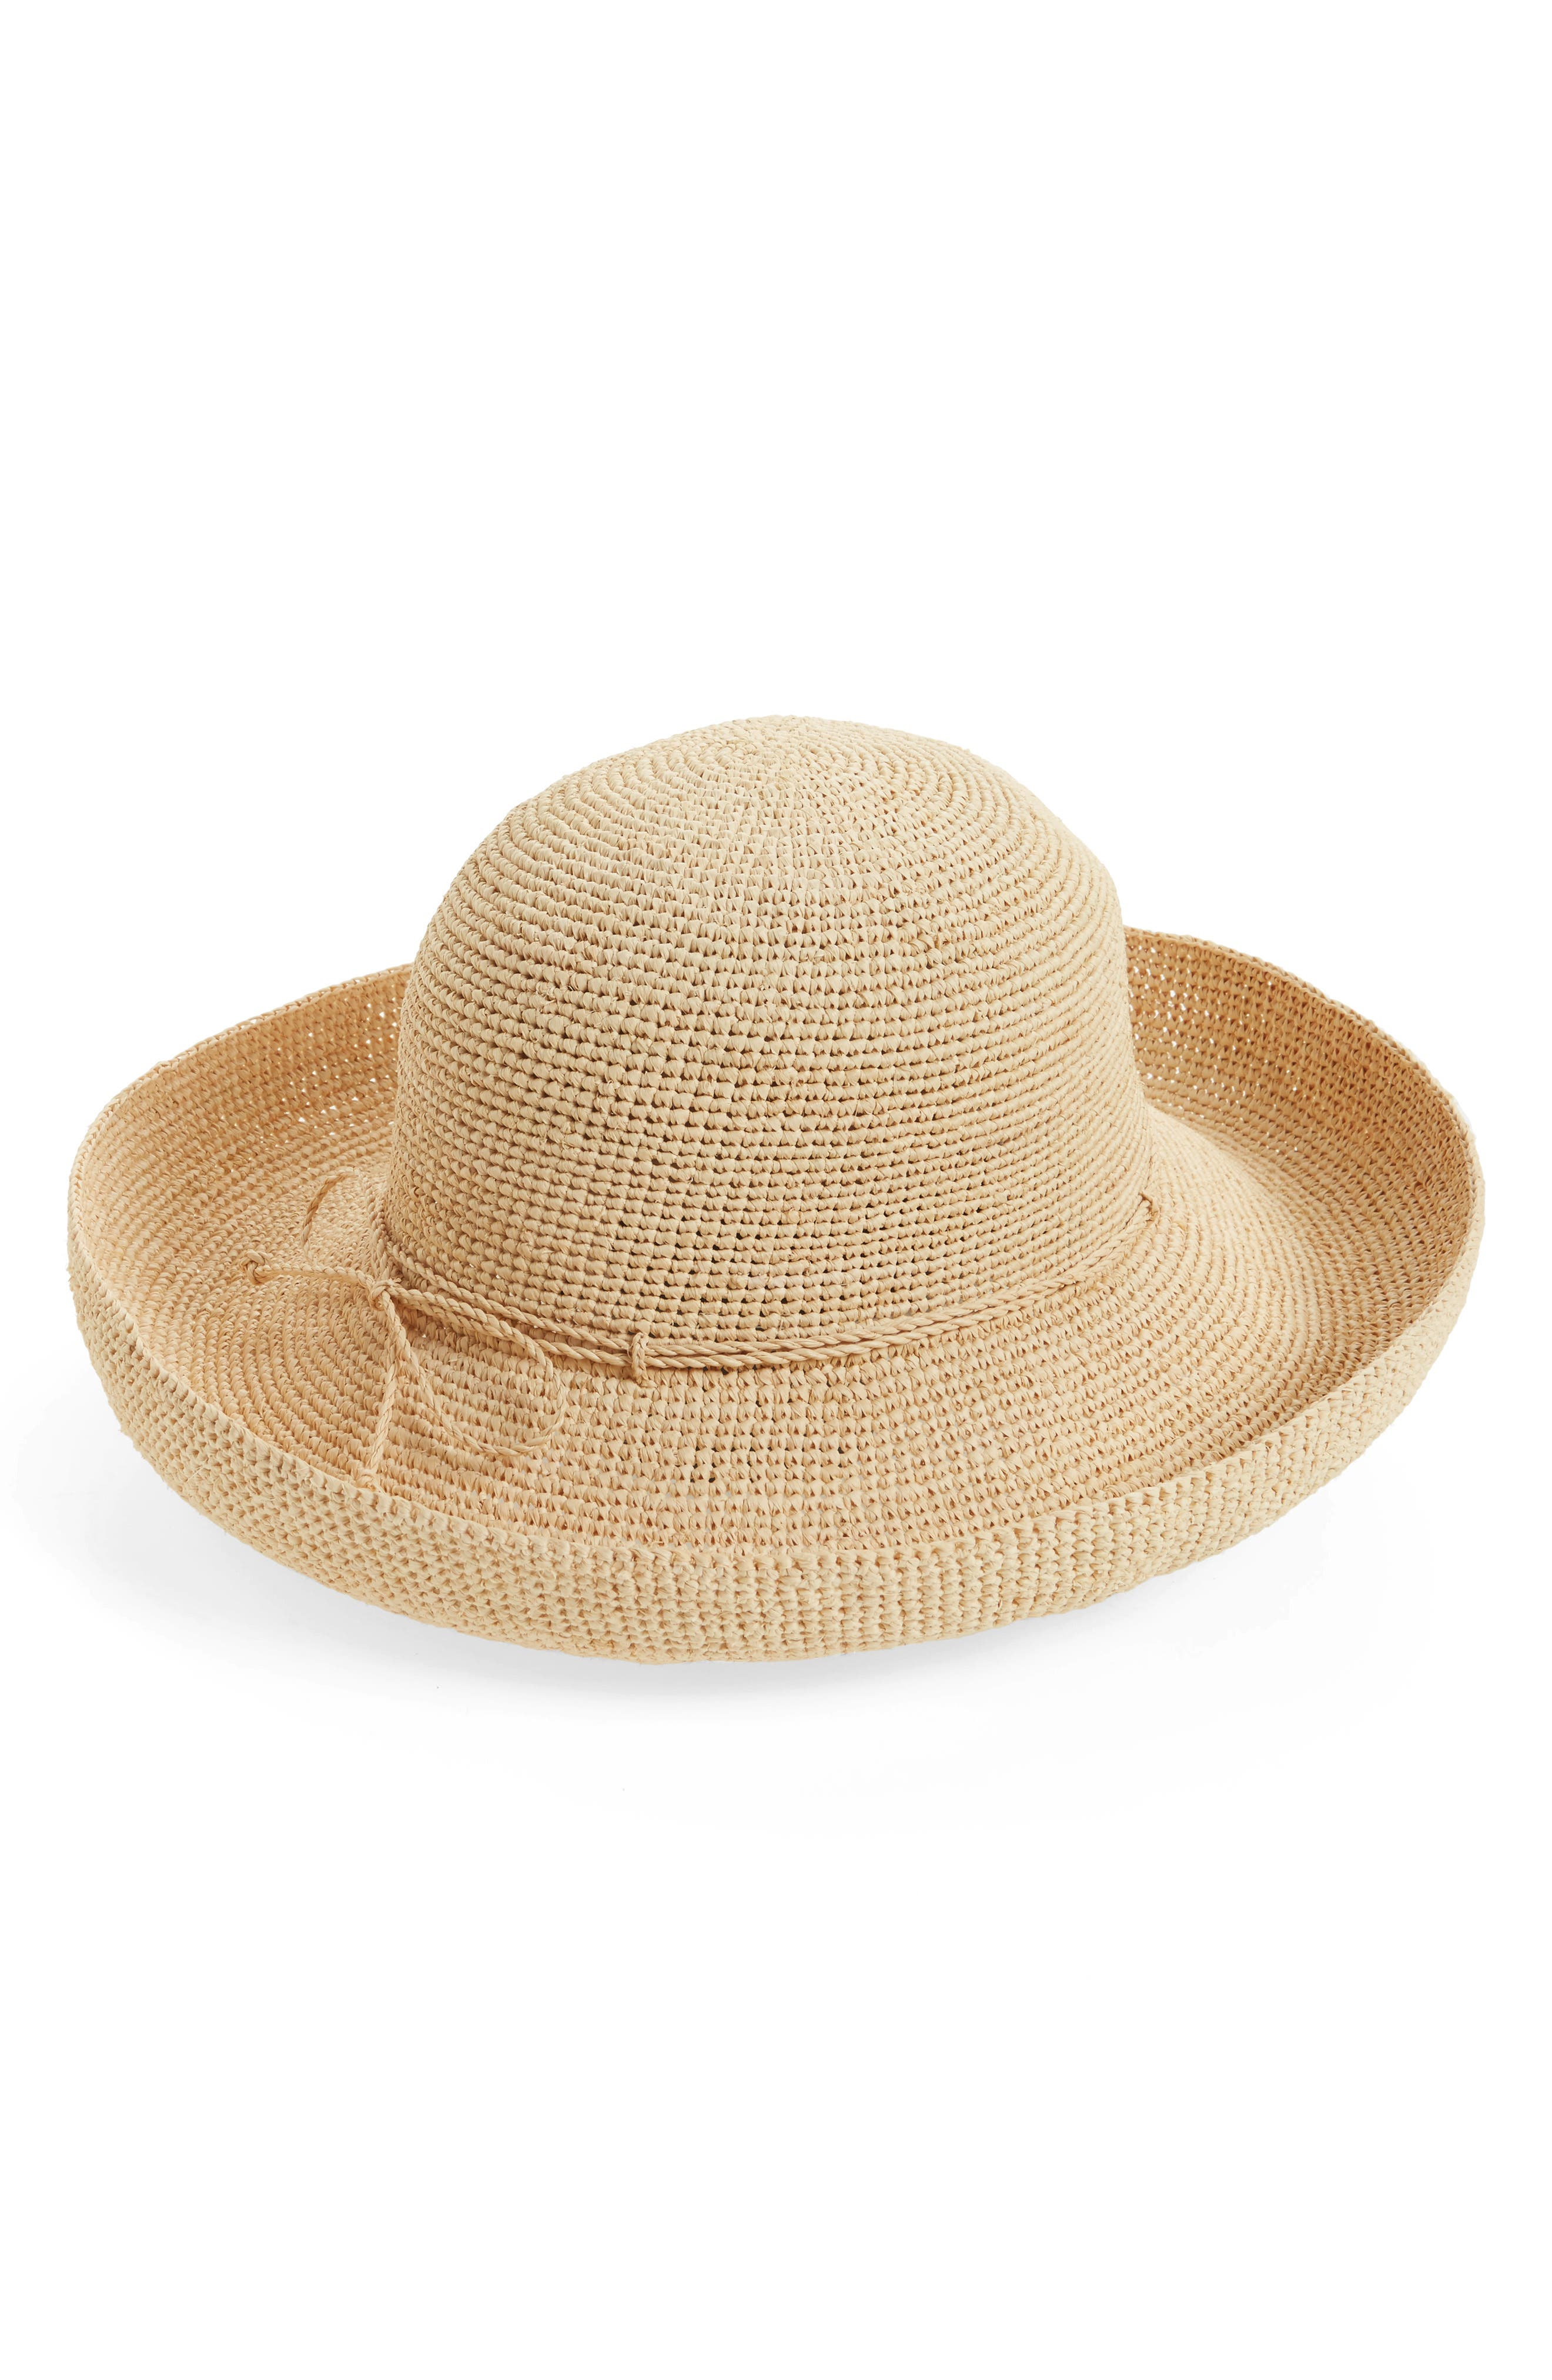 Alternate Image 1 Selected - Helen Kaminski 'Provence 12' Packable Raffia Hat